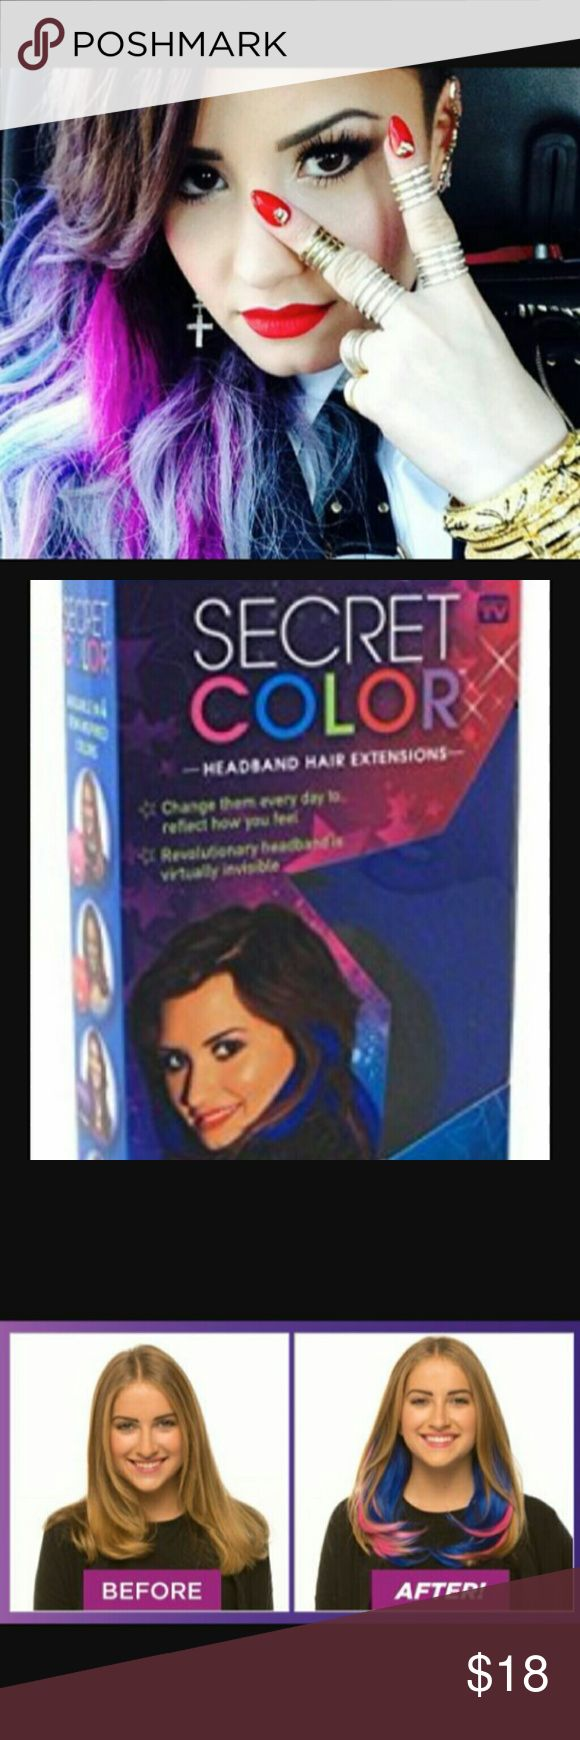 Secret color Demi lovato blue hair extensions 14in Beautiful Demi color head band hair extensions 14inches long all around color BLUE u can style the extension to your desire! very easy to do brand NEW in box sealed be er opened perfect for Halloween dress up!!  Keys cos play Lolita kawaii wig extension Halloween Kylie Jenner Mac sephora argan oil style mermaid ! Ulta mac sephora dye peek a boos highlightsv Sephora Accessories Hair Accessories